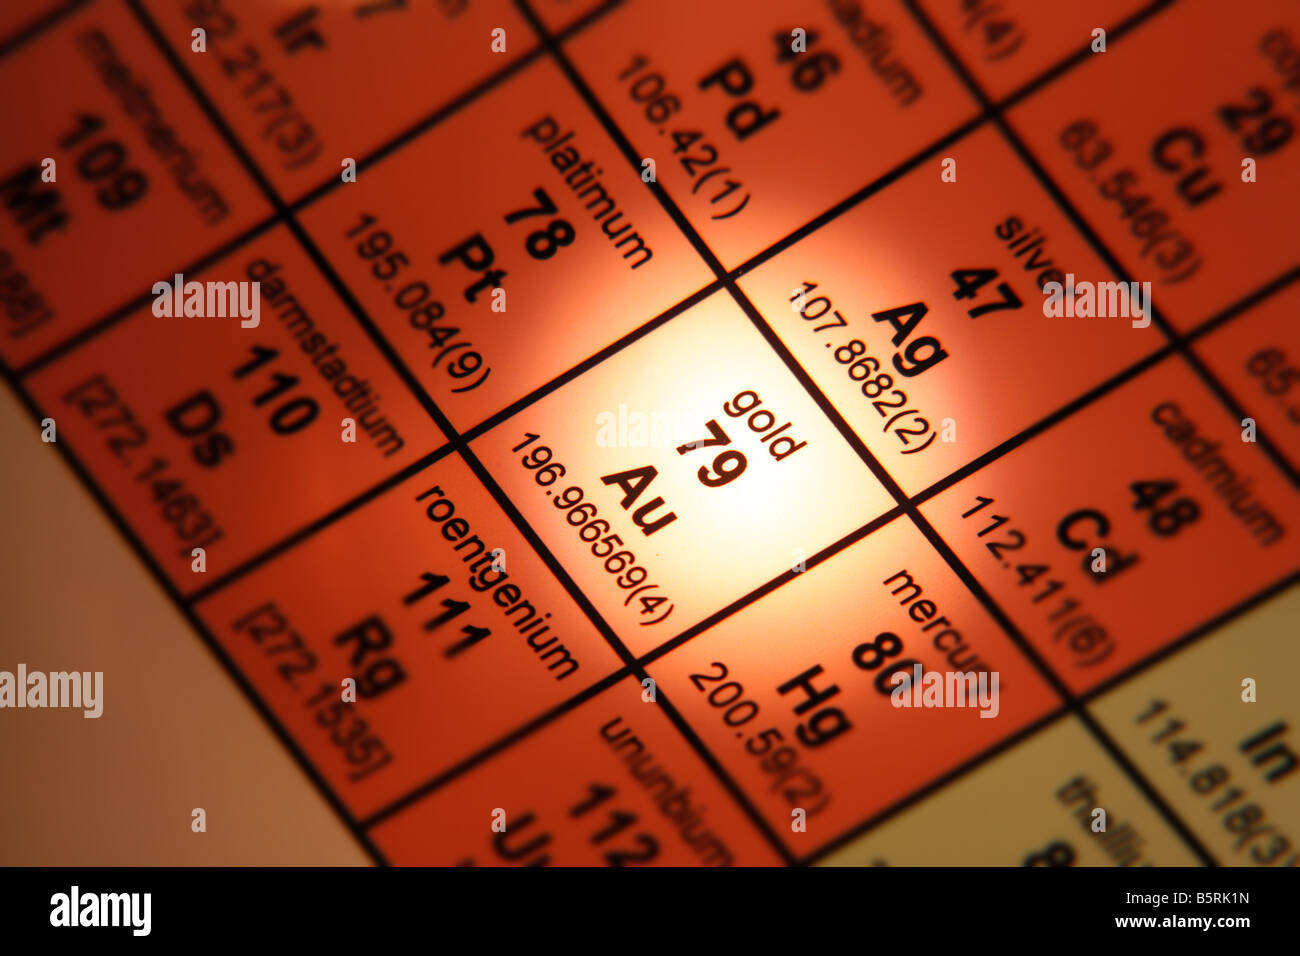 Periodic table of elements gold au stock photo 20803489 alamy periodic table of elements gold au urtaz Image collections